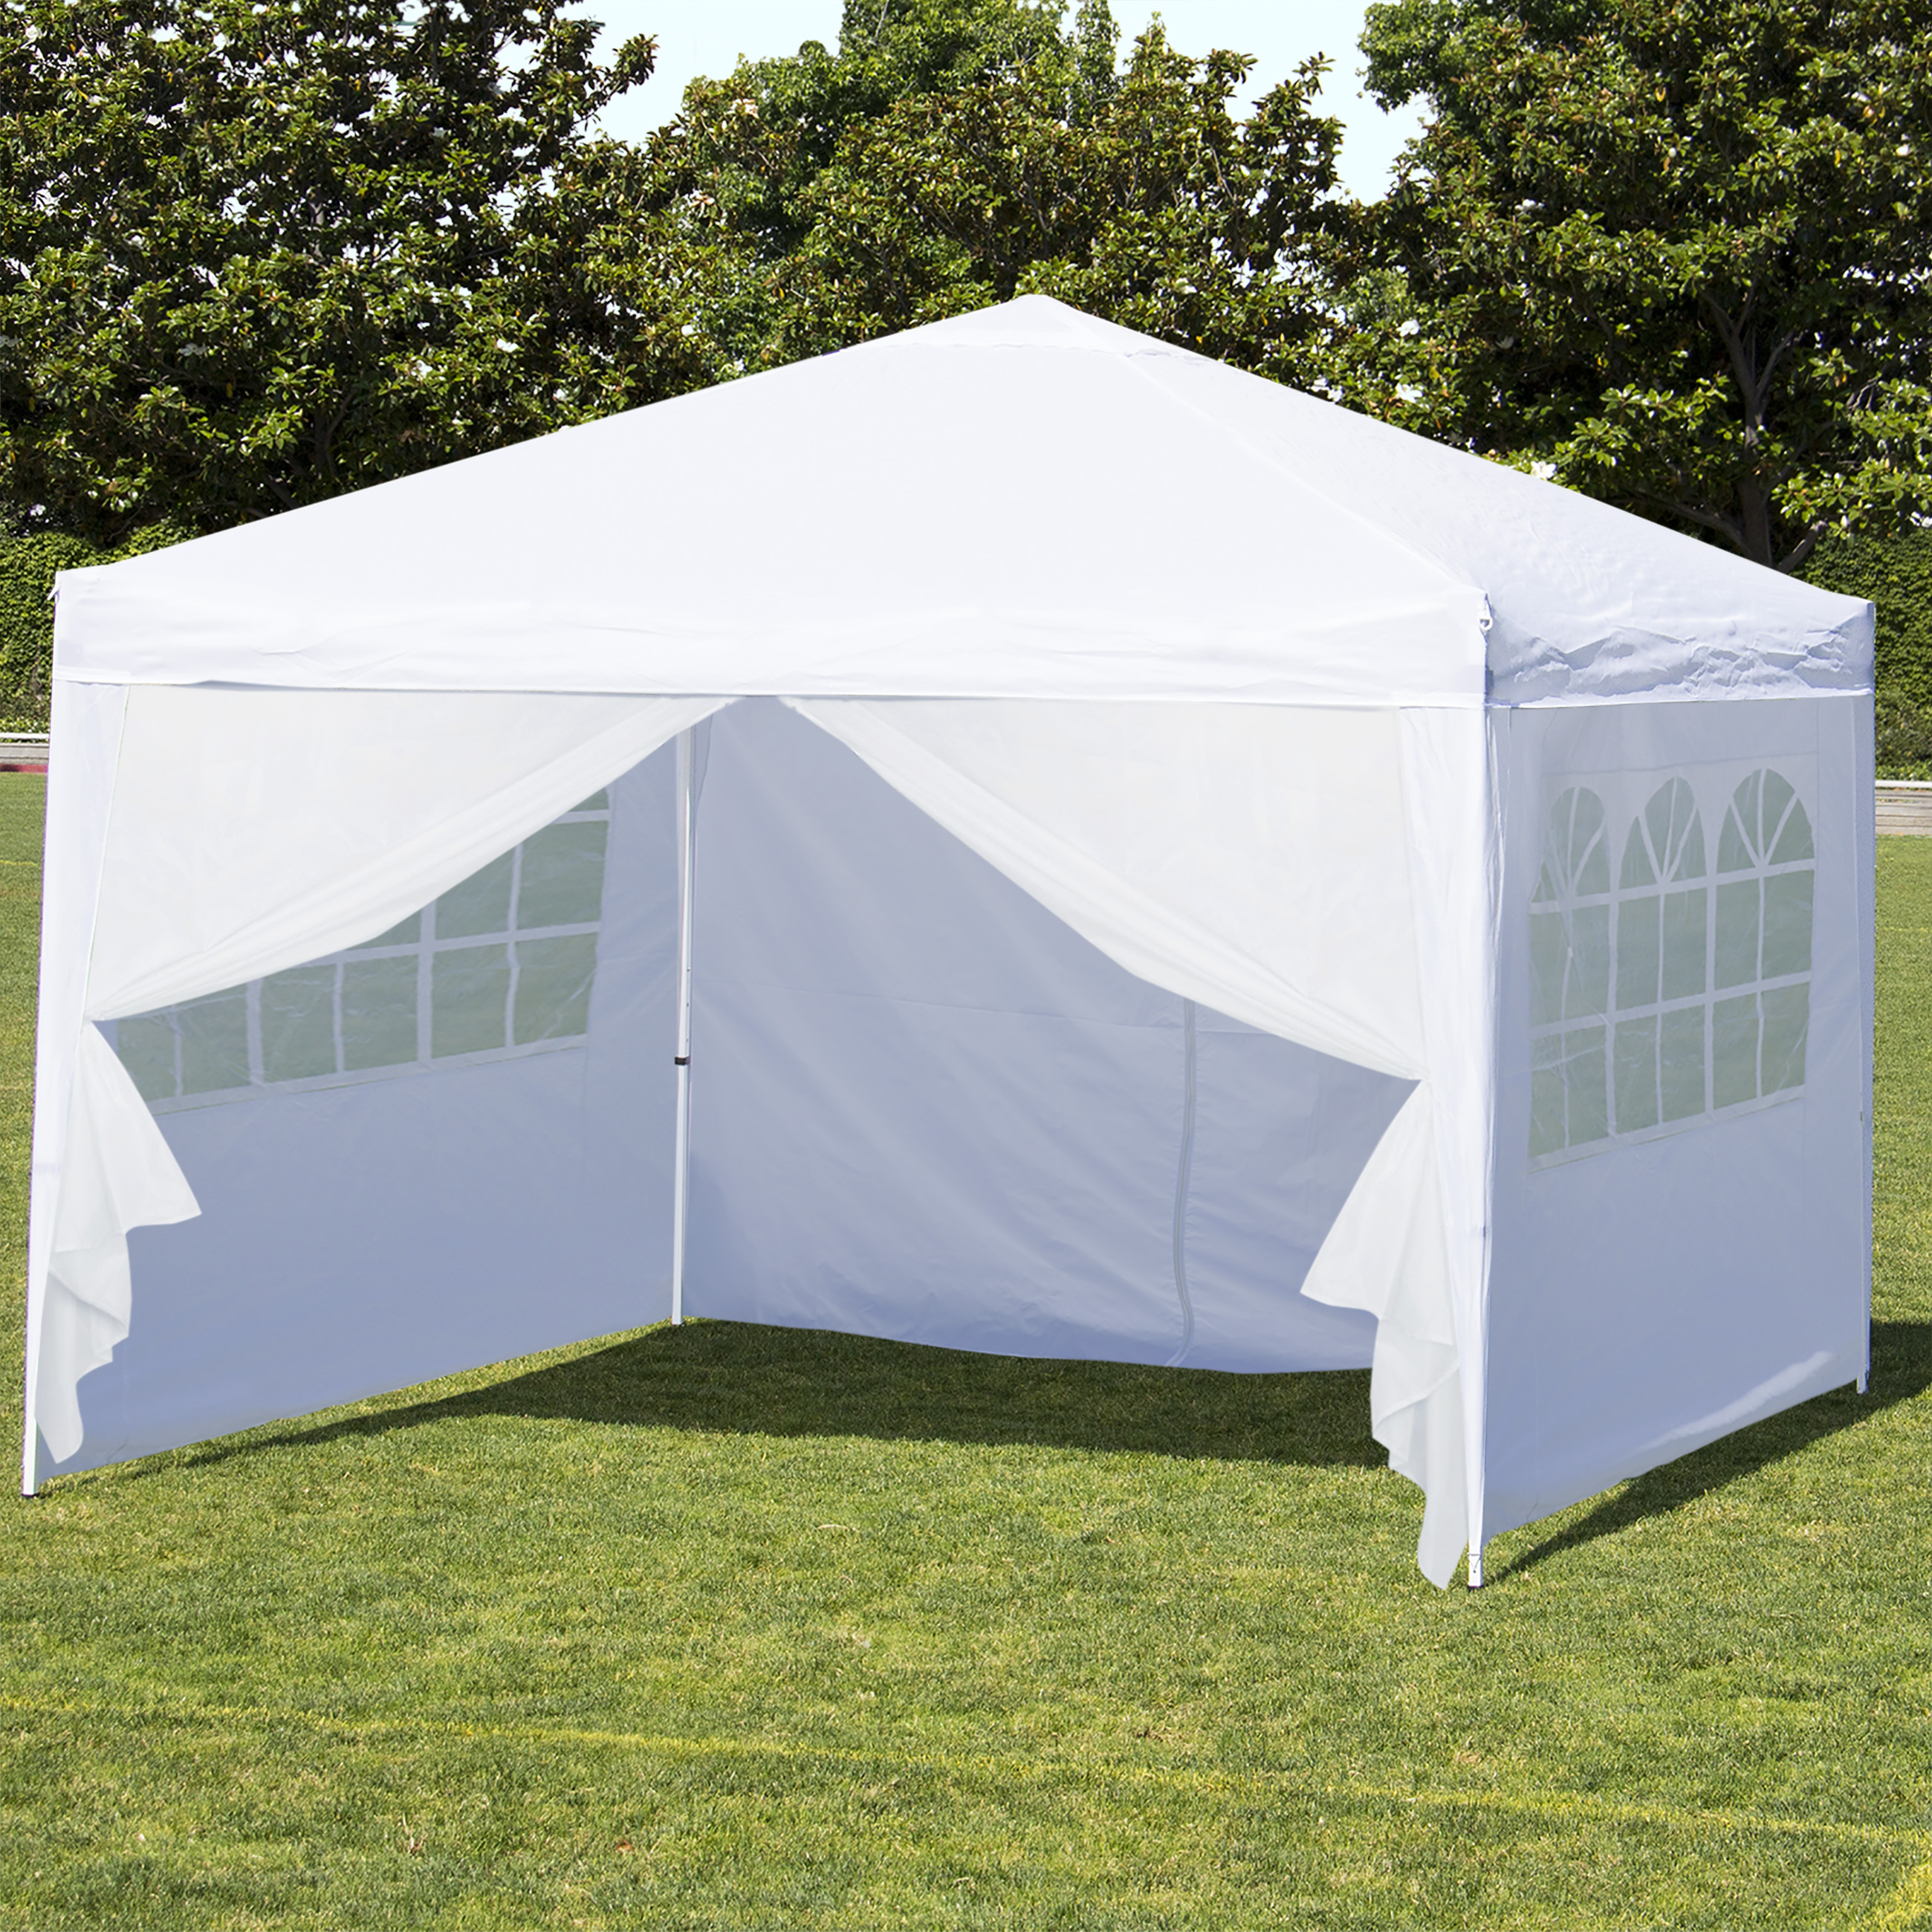 Best Choice Products 10 x 10 EZ Pop Up Canopy Tent Side Walls